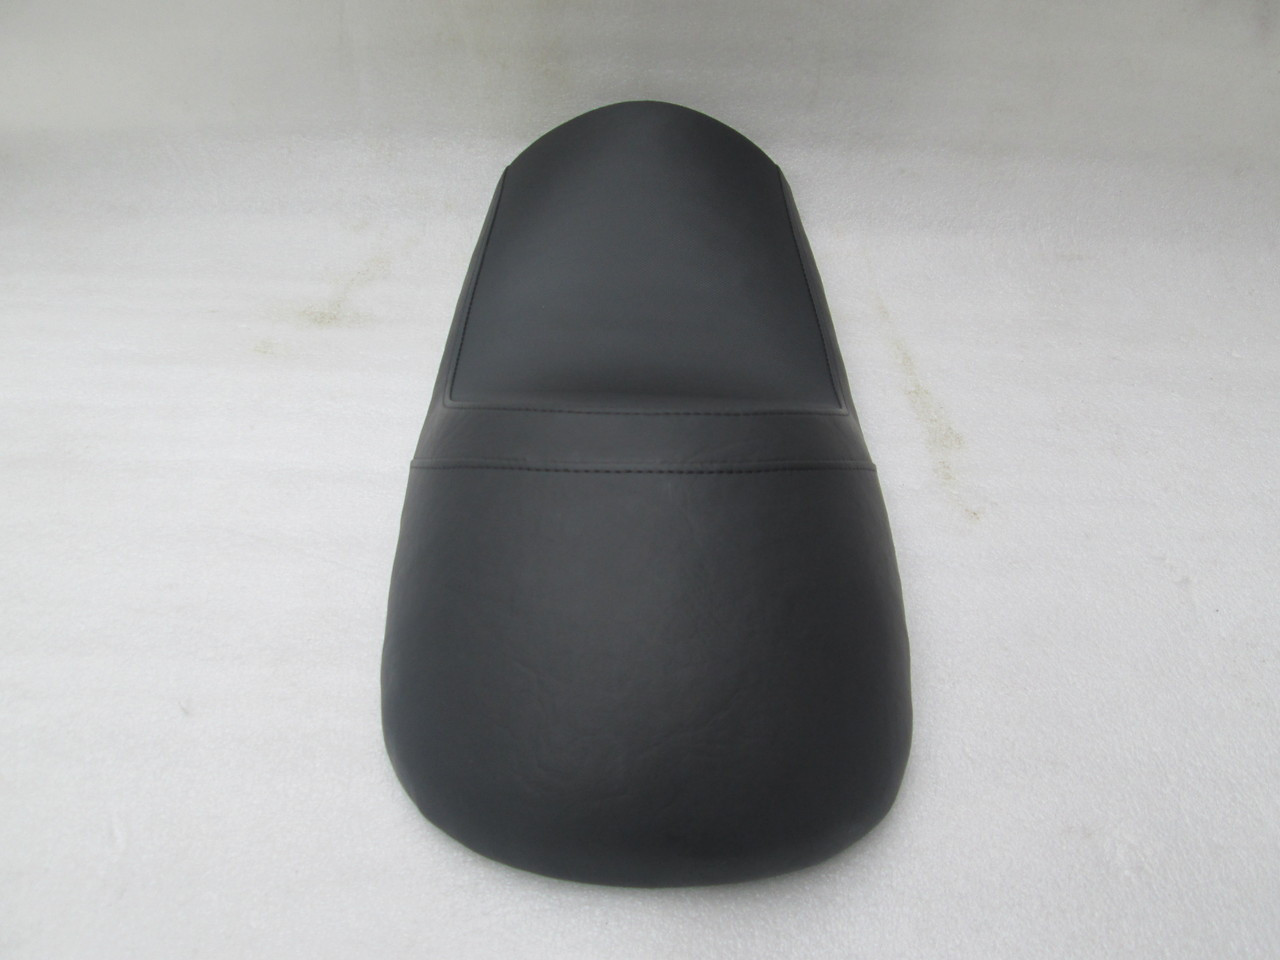 Norton Commando 750 850 Interstate Complete Motorcycle Seat Unit #4208